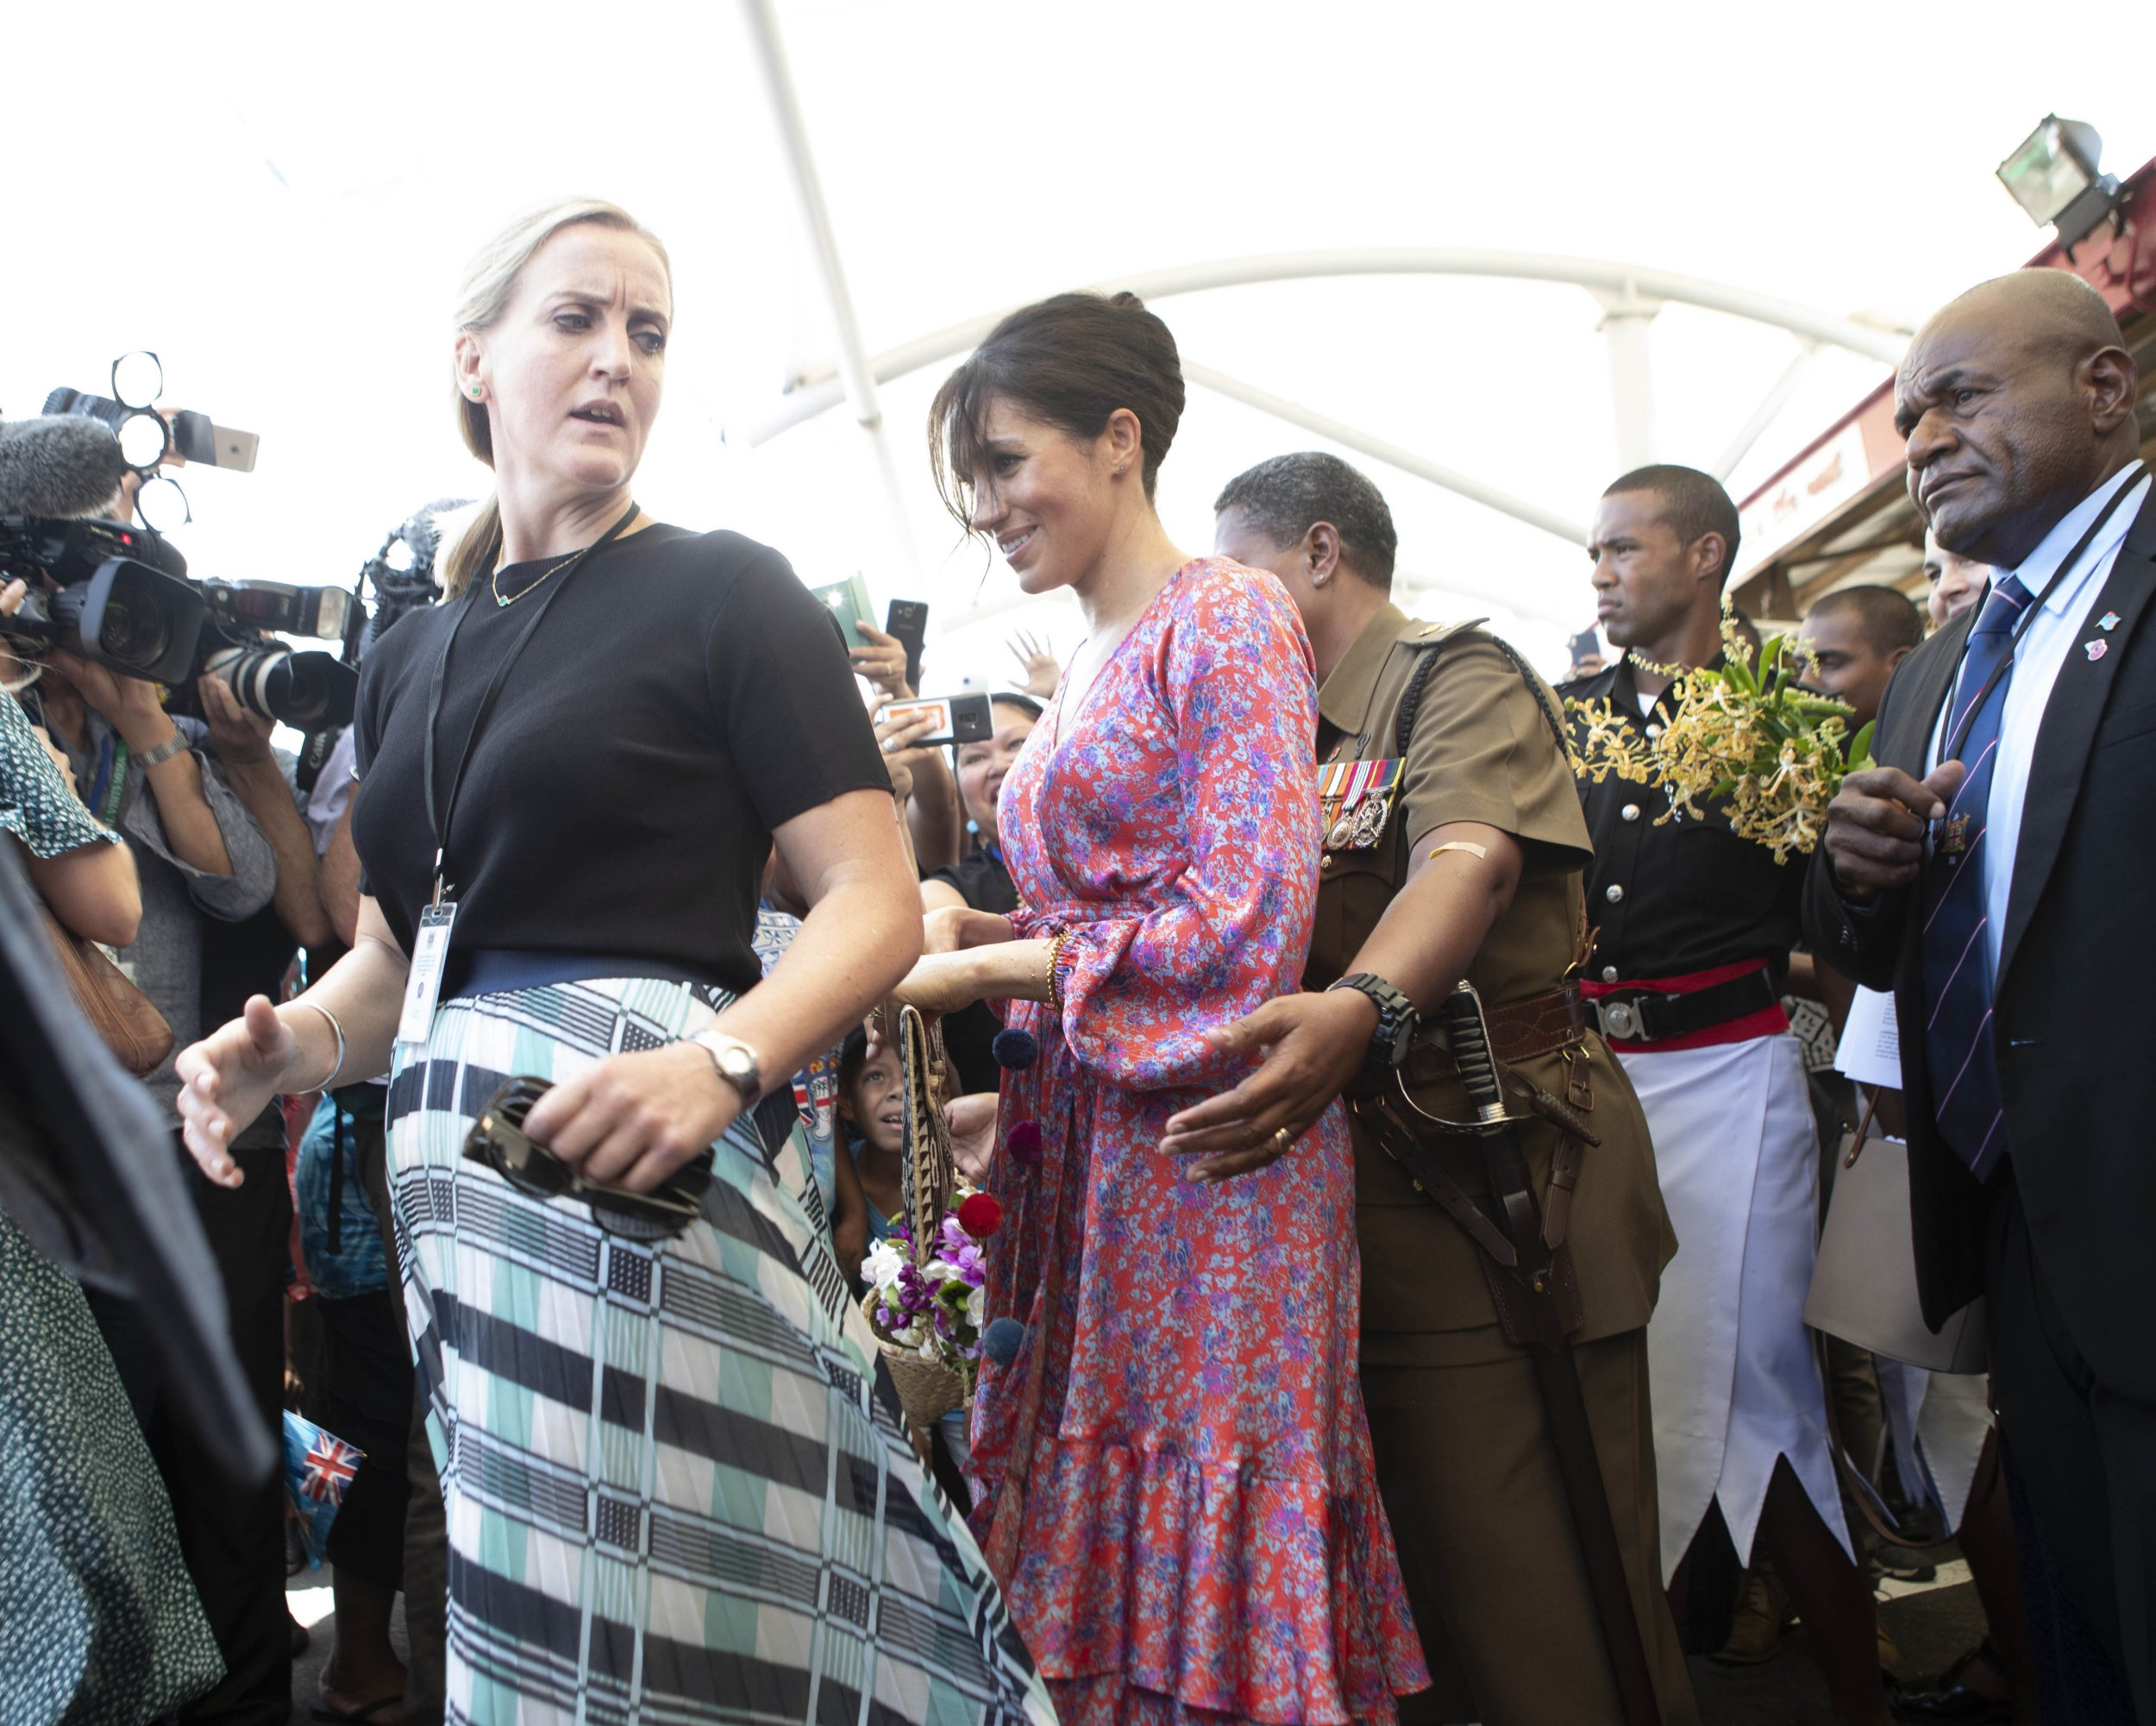 SUVA, FIJI - OCTOBER 24: Meghan, Duchess of Sussex visits a market on October 24, 2018 in Suva, Fiji. The Duke and Duchess of Sussex are on their official 16-day Autumn tour visiting cities in Australia, Fiji, Tonga and New Zealand. (Photo by Ian Vogler - Pool/Getty Images)